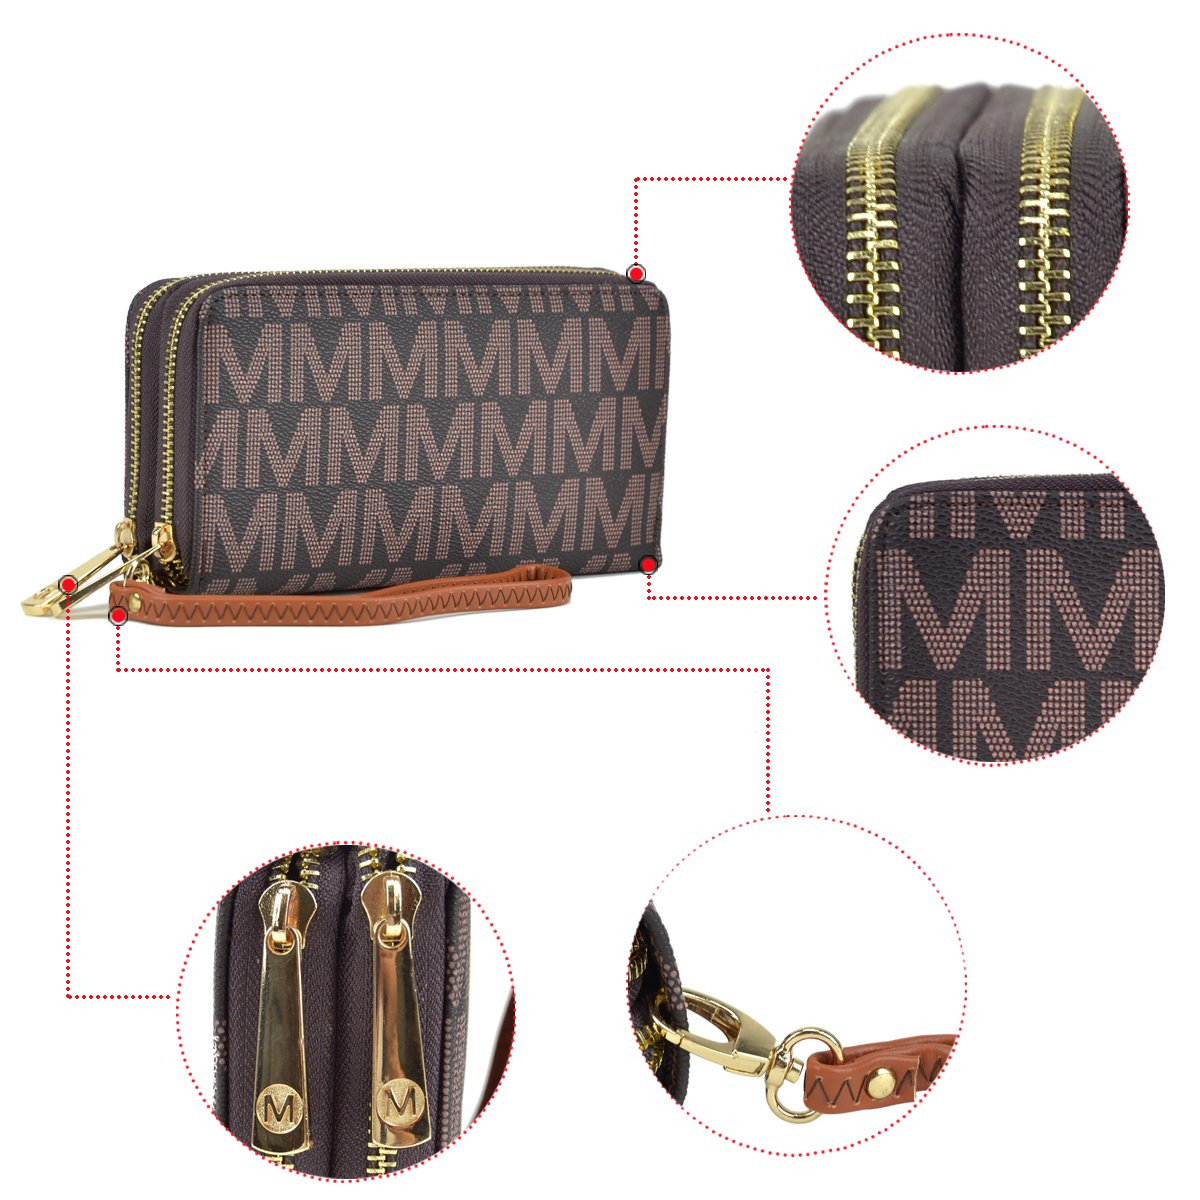 MMK Collection PU Leather Newest All Season Classic Unisex Double Zipper Closure Roomy Fashion Wallet with Wristlet (MLW-MM5770-BG) by Marco M. Kerry (Image #3)